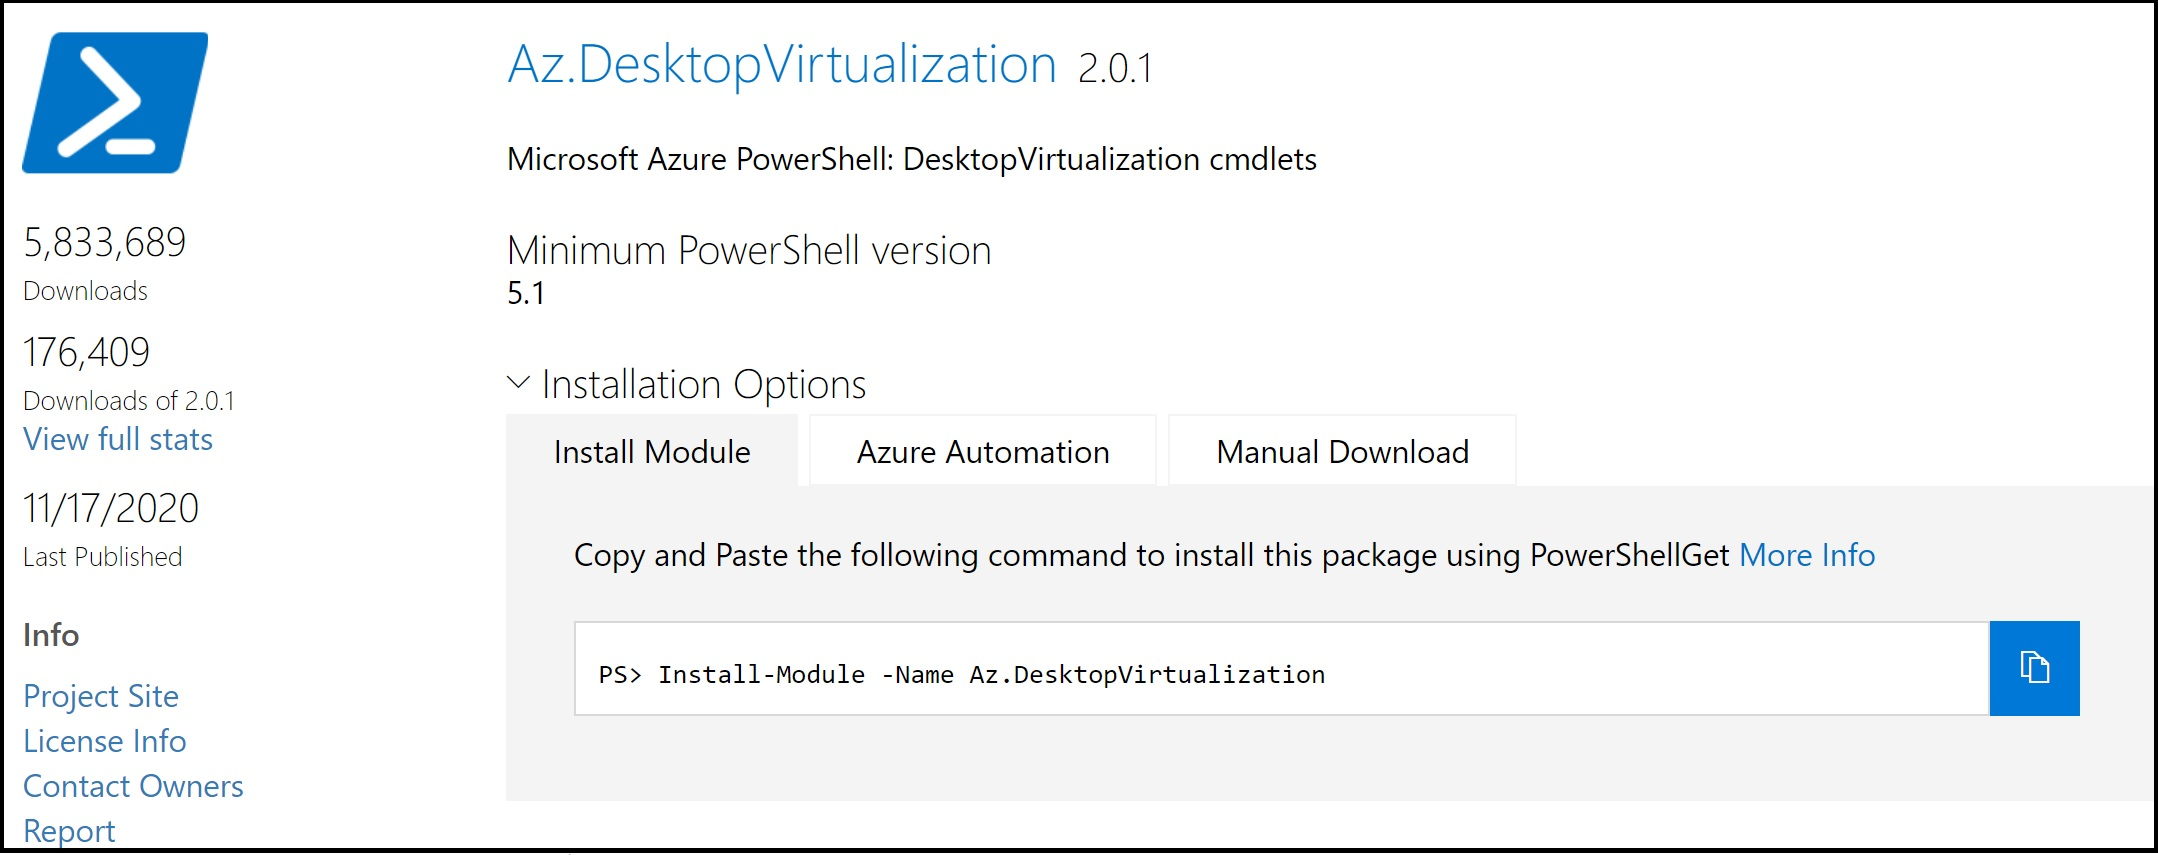 A new release of the WVD Powershell module